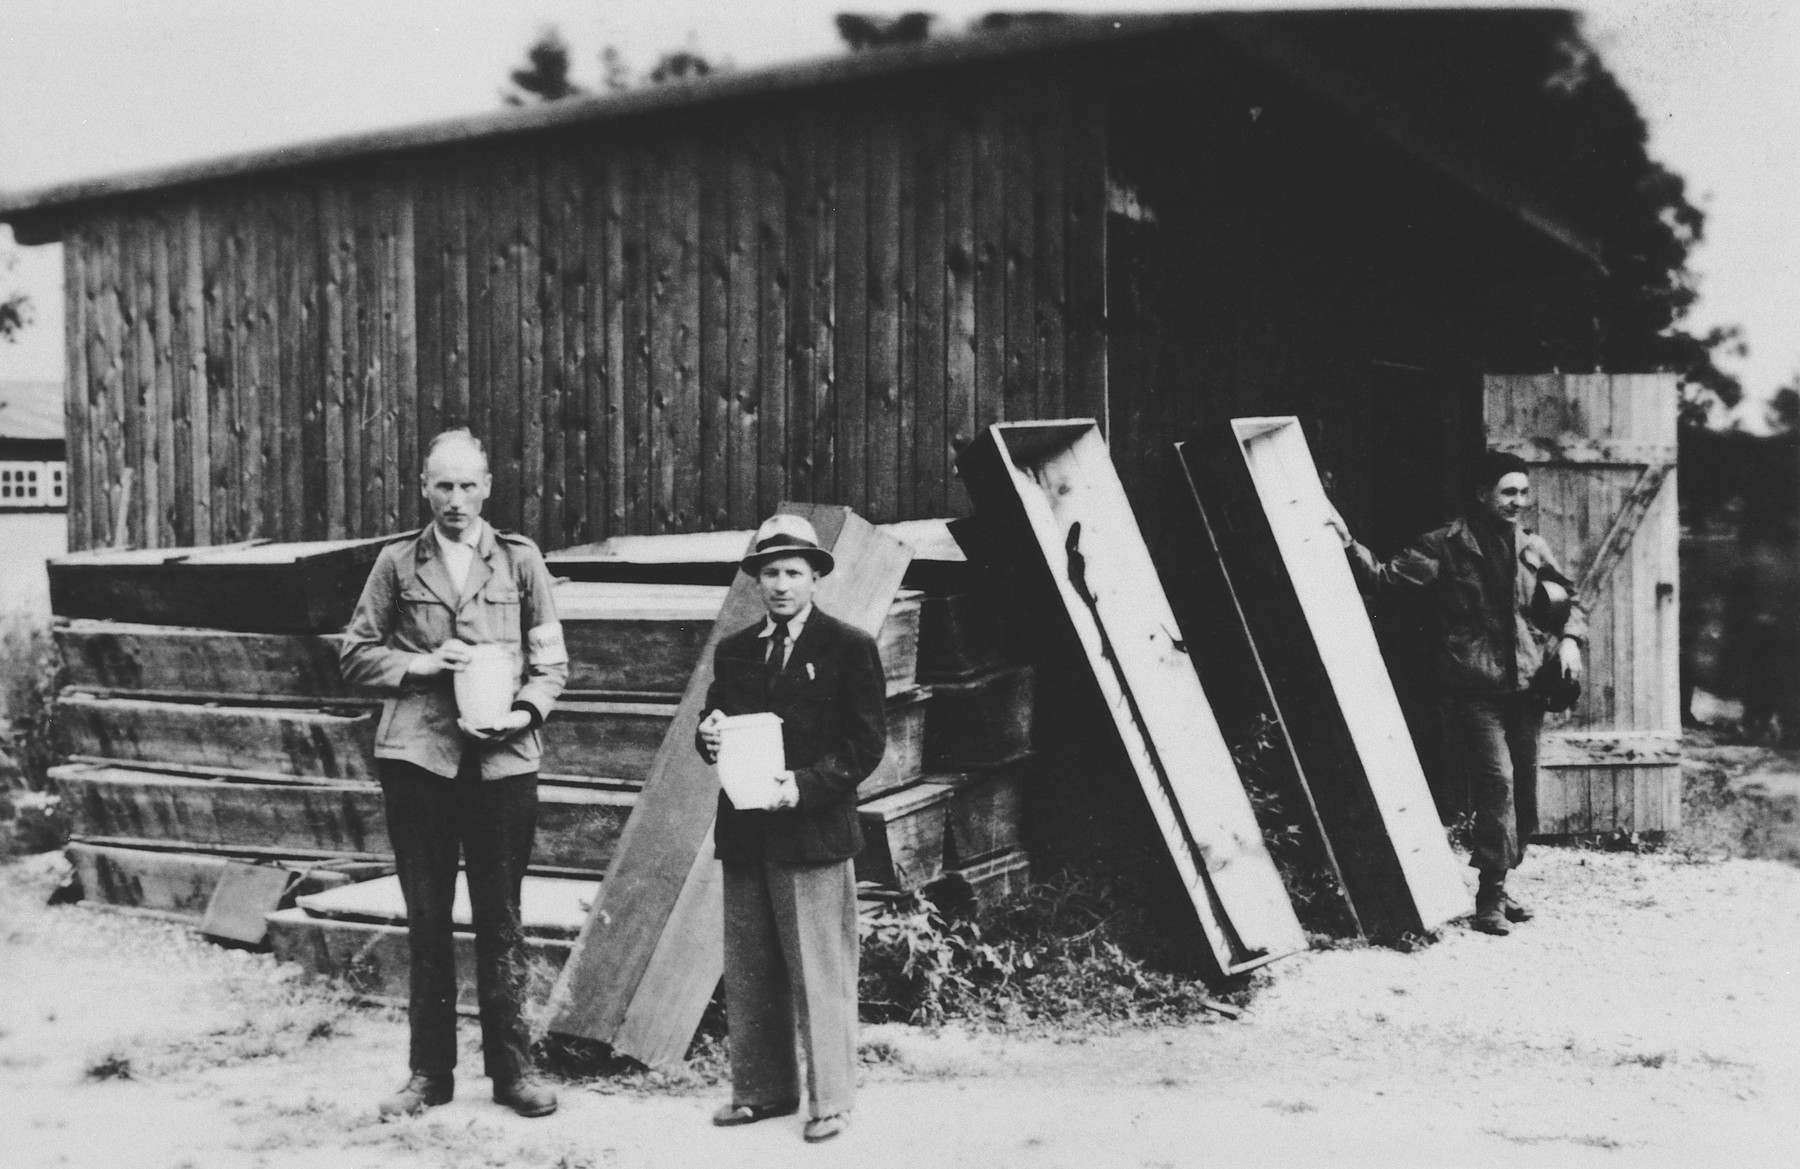 Two men stand in front of a stack of coffins in the newly liberated Dachau concentration camp holding urns of ashes.